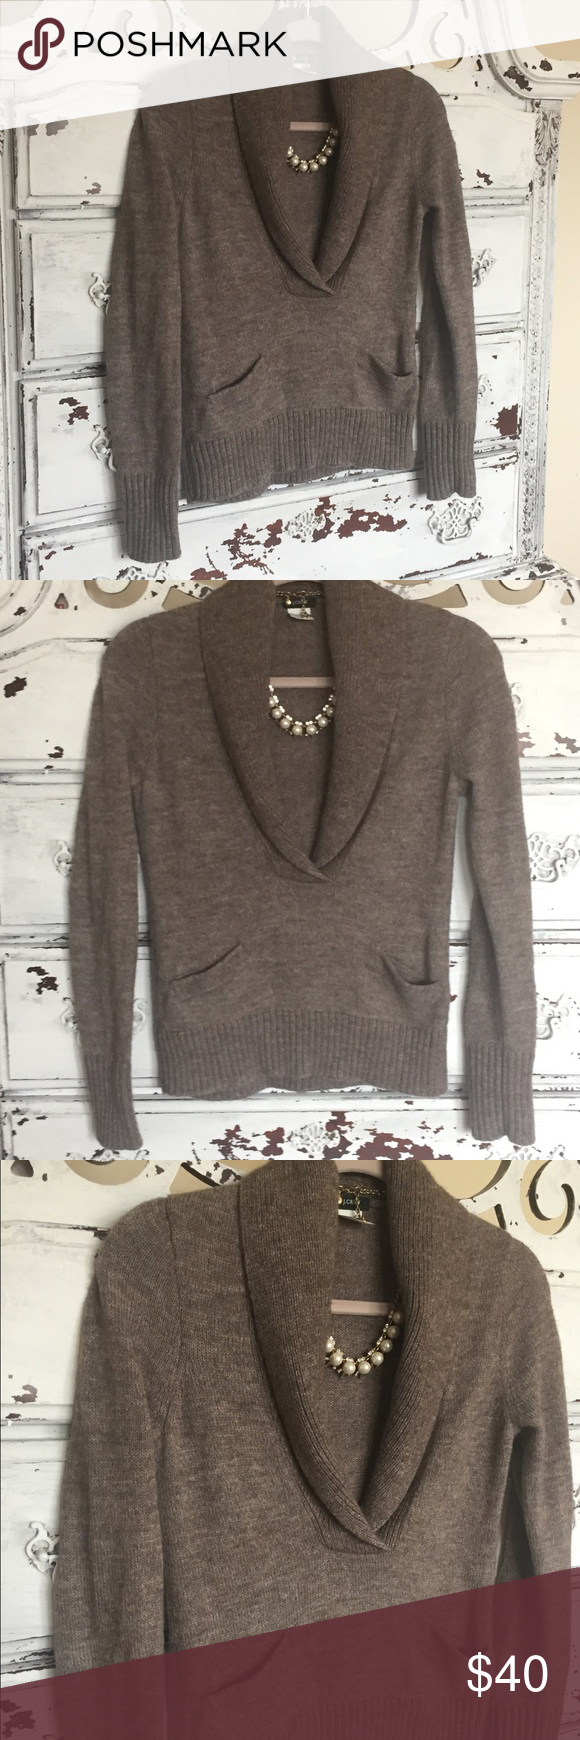 J. Crew pretty heather brown sweater So pretty! Excellent ...